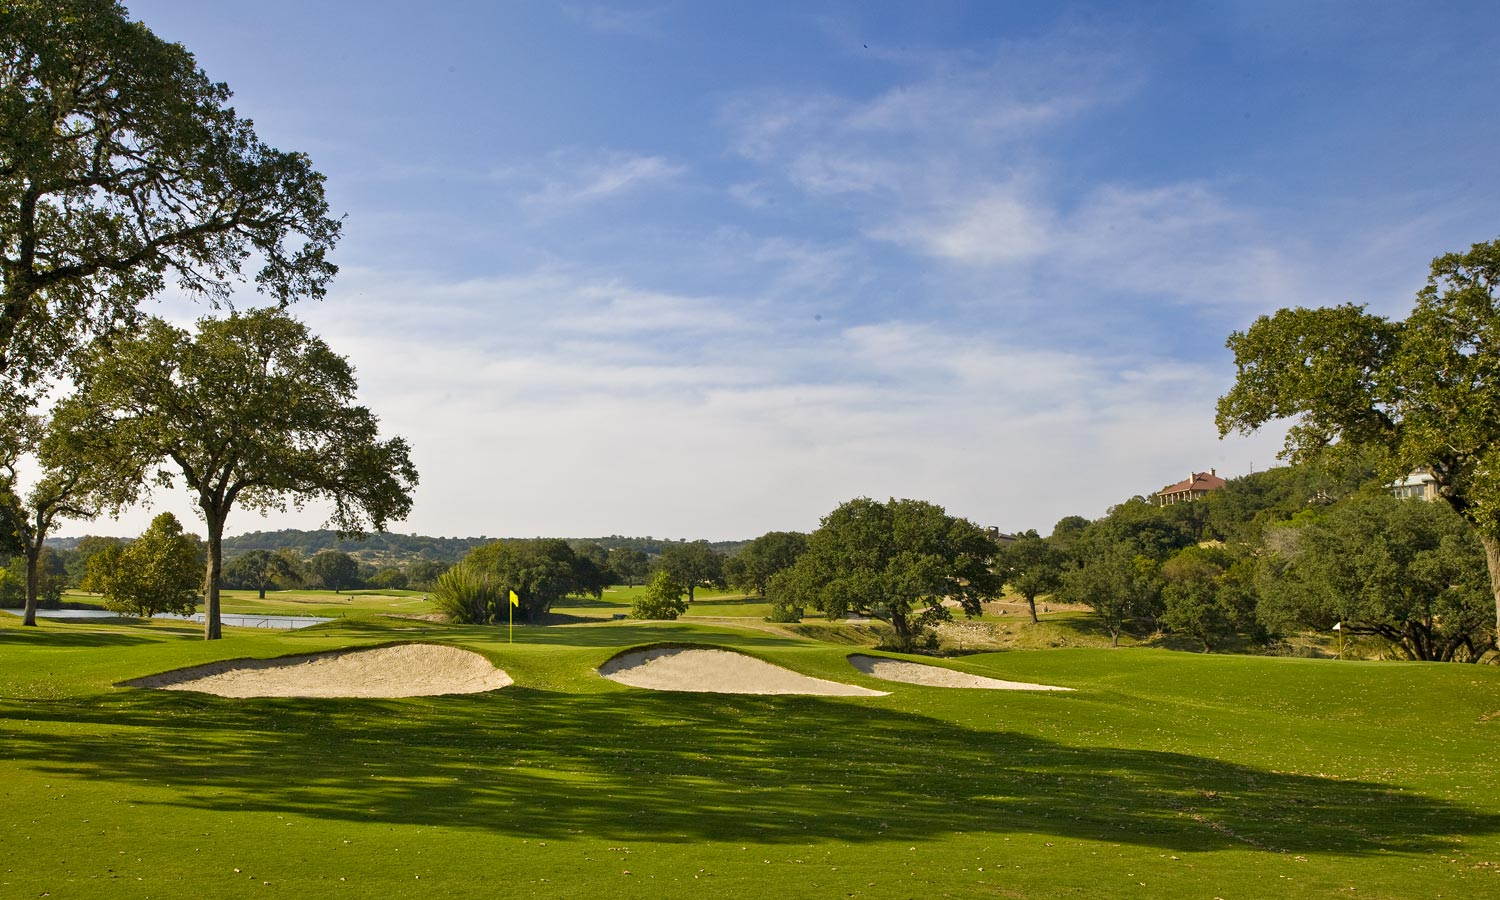 Golf The Resort at Tapatio Springs in the hill country outside of Austin Texas has a challenging golf course in a beautiful setting. More info at www.tapatio.com